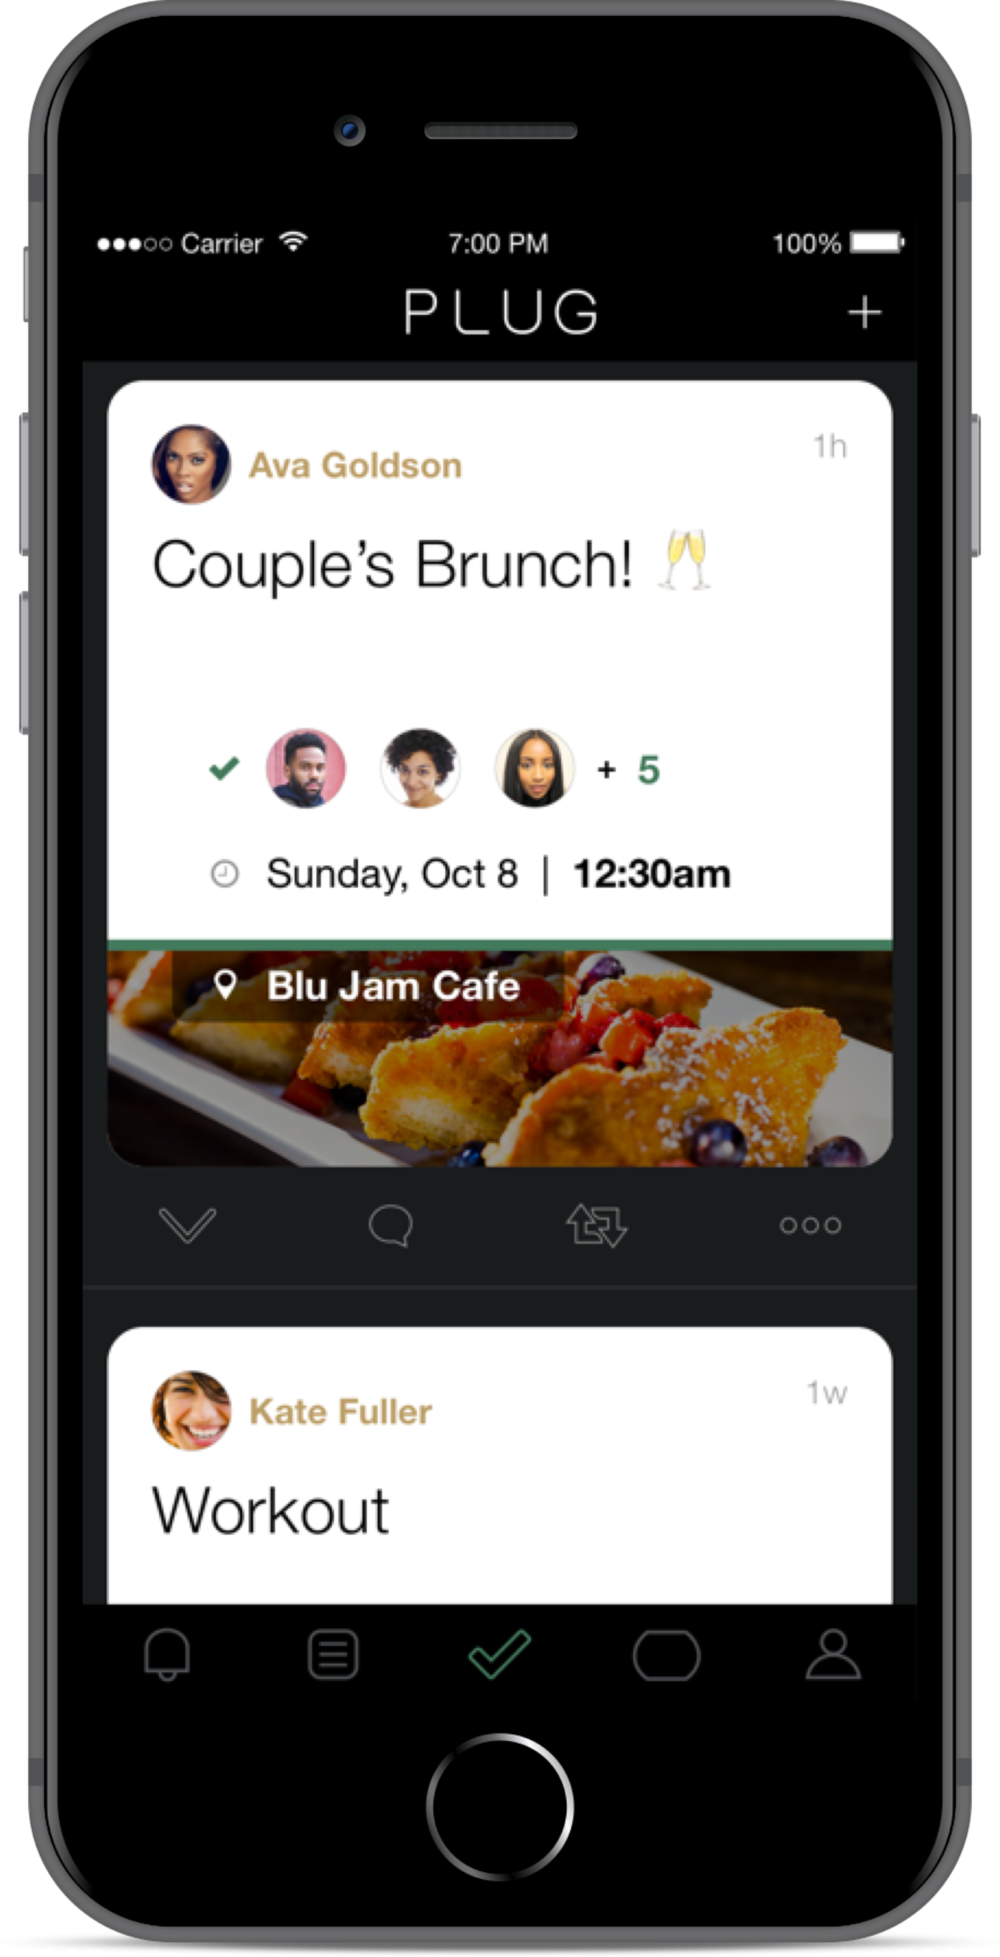 Veronica returns to the Accepted Plugs screen, where she sees Couple's Brunch! 🥂 has been added.